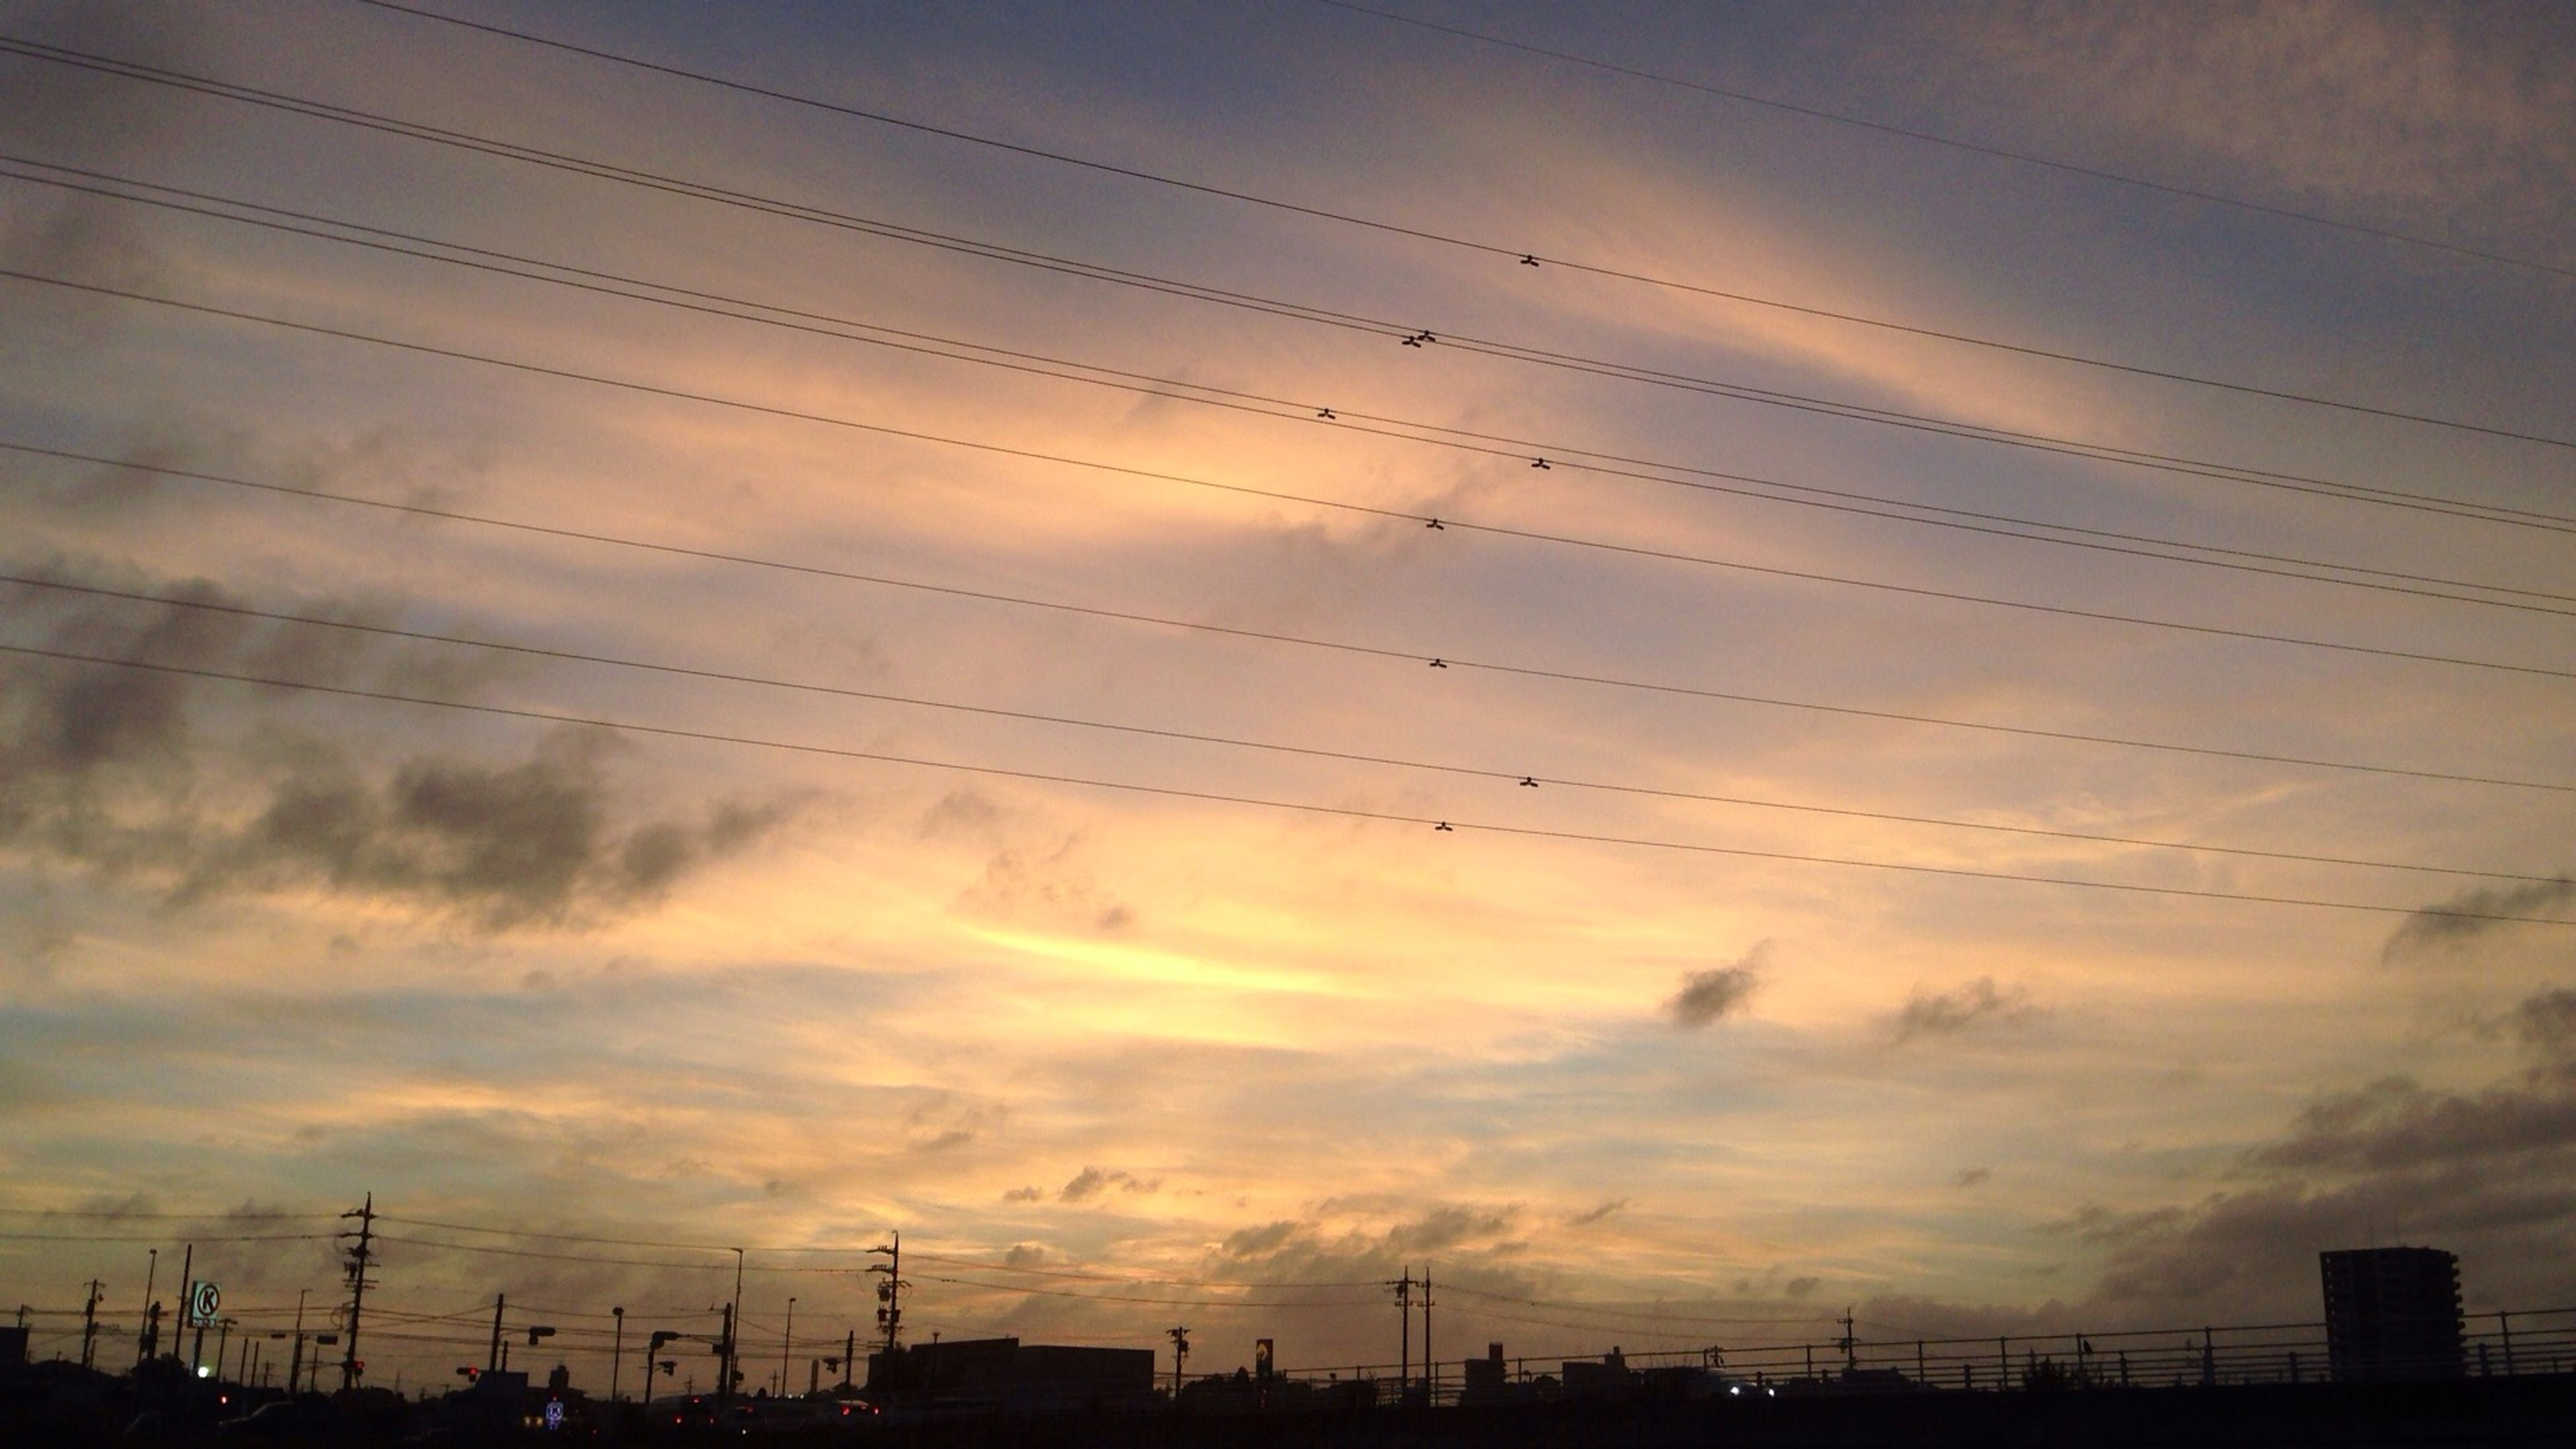 silhouette, sunset, power line, sky, electricity pylon, low angle view, connection, cloud - sky, electricity, power supply, fuel and power generation, cable, cloud, nature, dusk, cloudy, beauty in nature, technology, scenics, tranquility